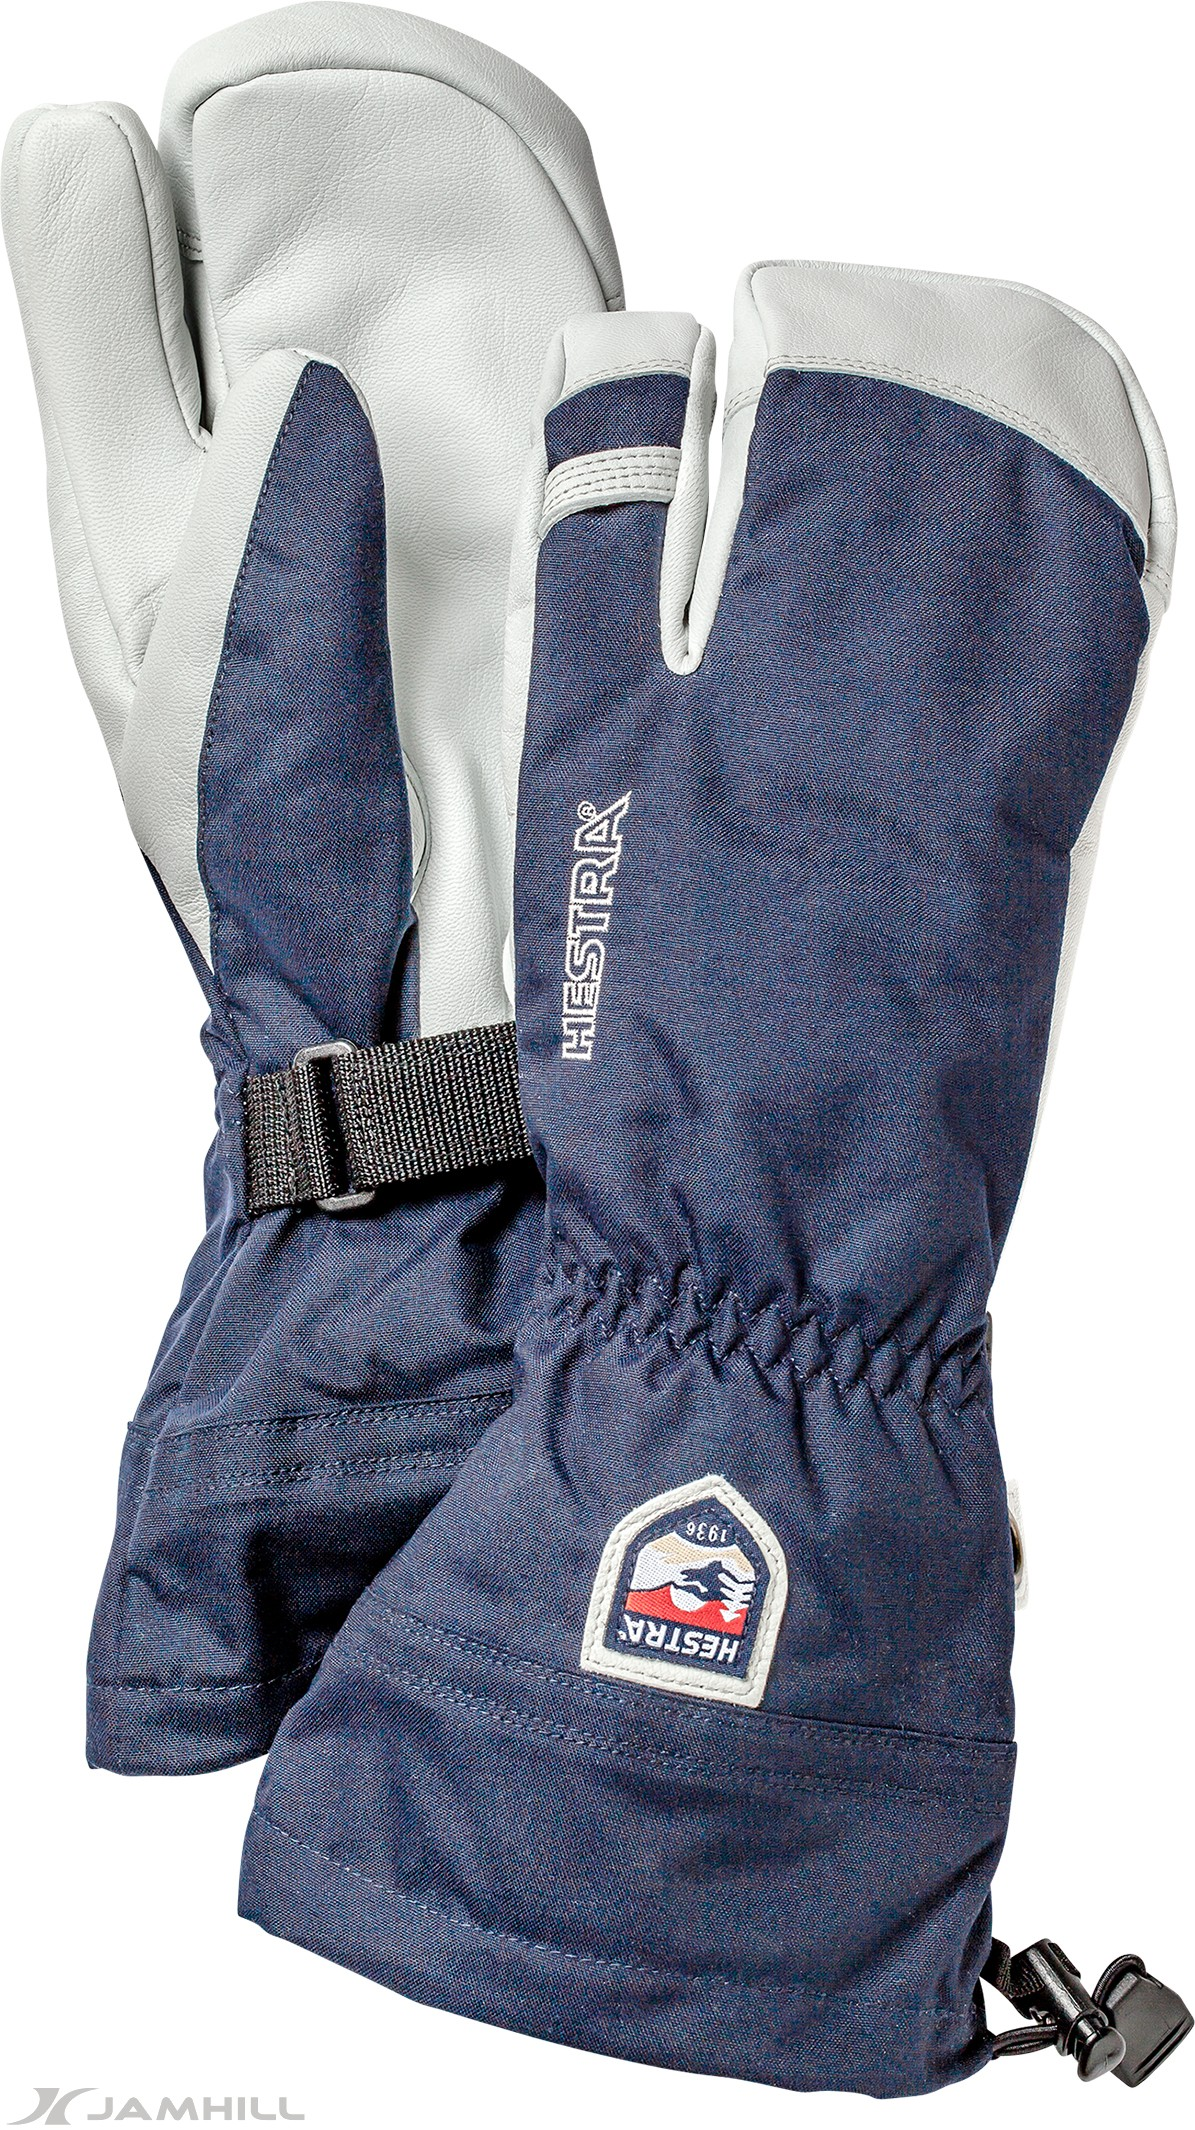 Hestra-Army-Heli-Ski-3-Finger-breathable-waterproof-leather-gloves